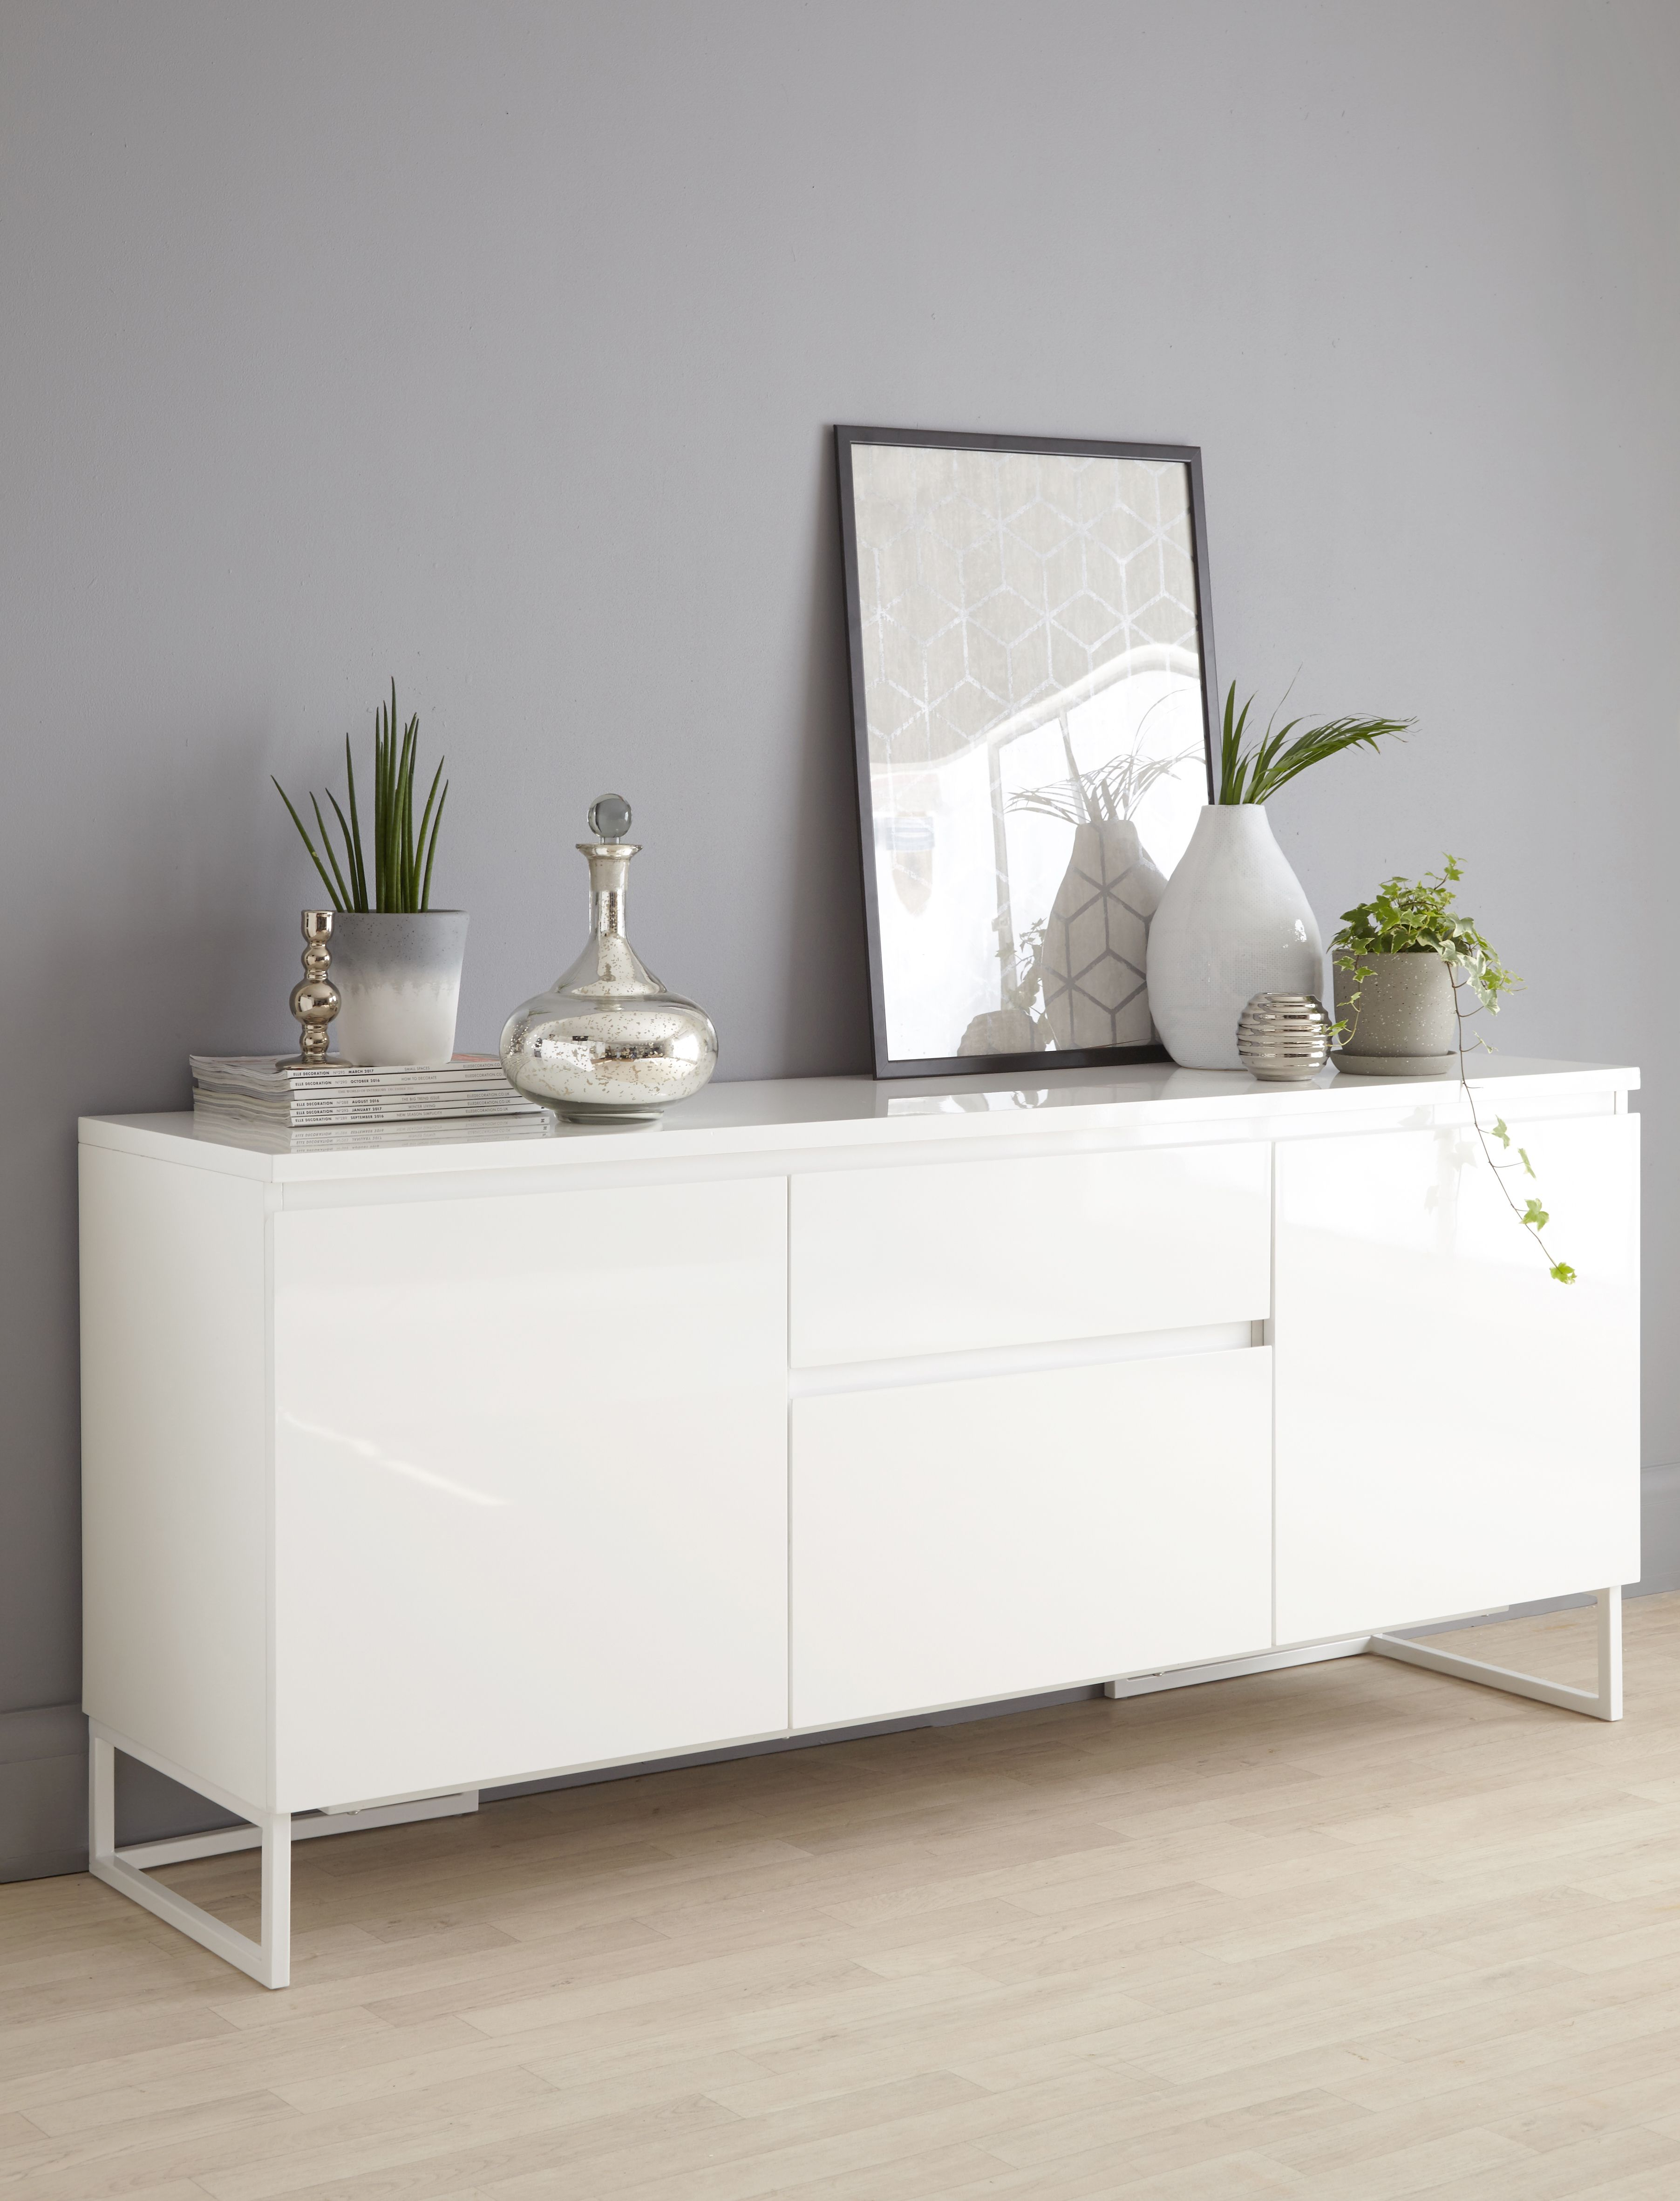 Lexi White Gloss Sideboard in 2020 White sideboard